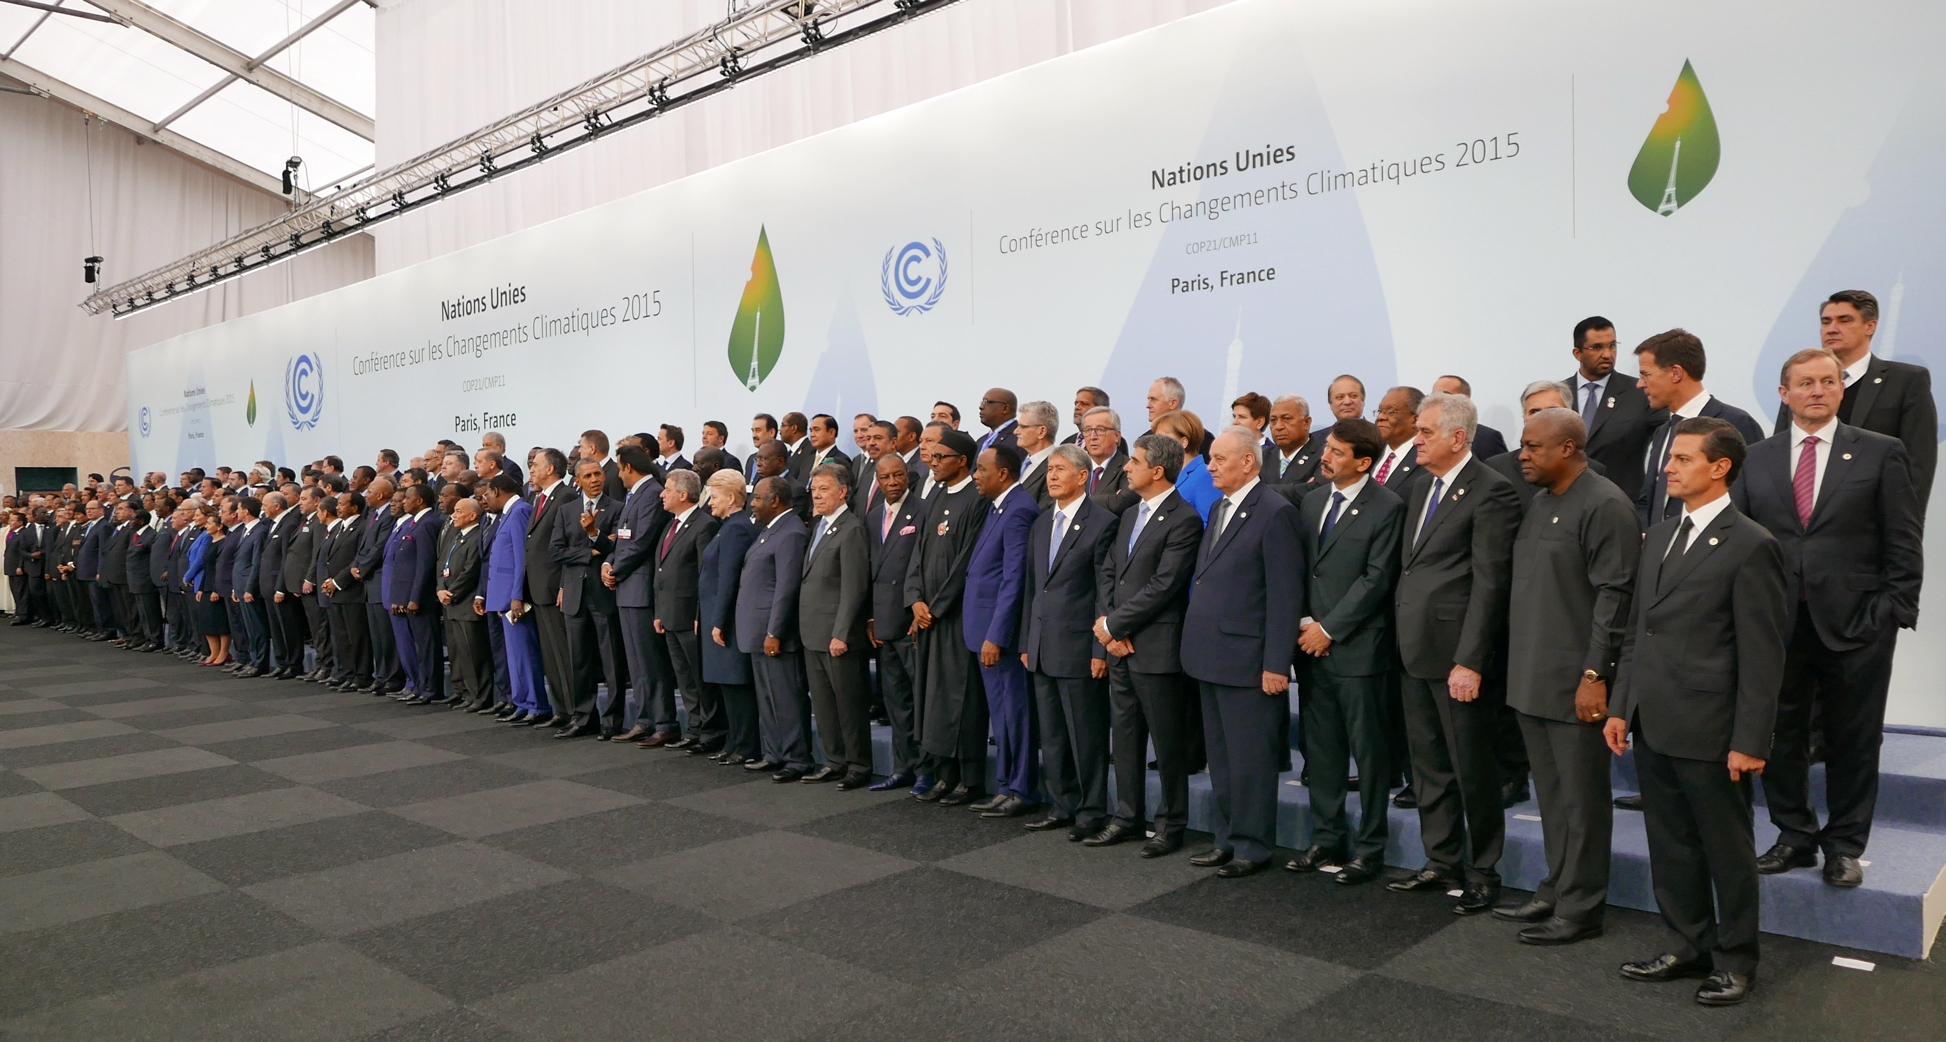 Heads of delegations at the 2015 United Nations Climate Change Conference in Paris.